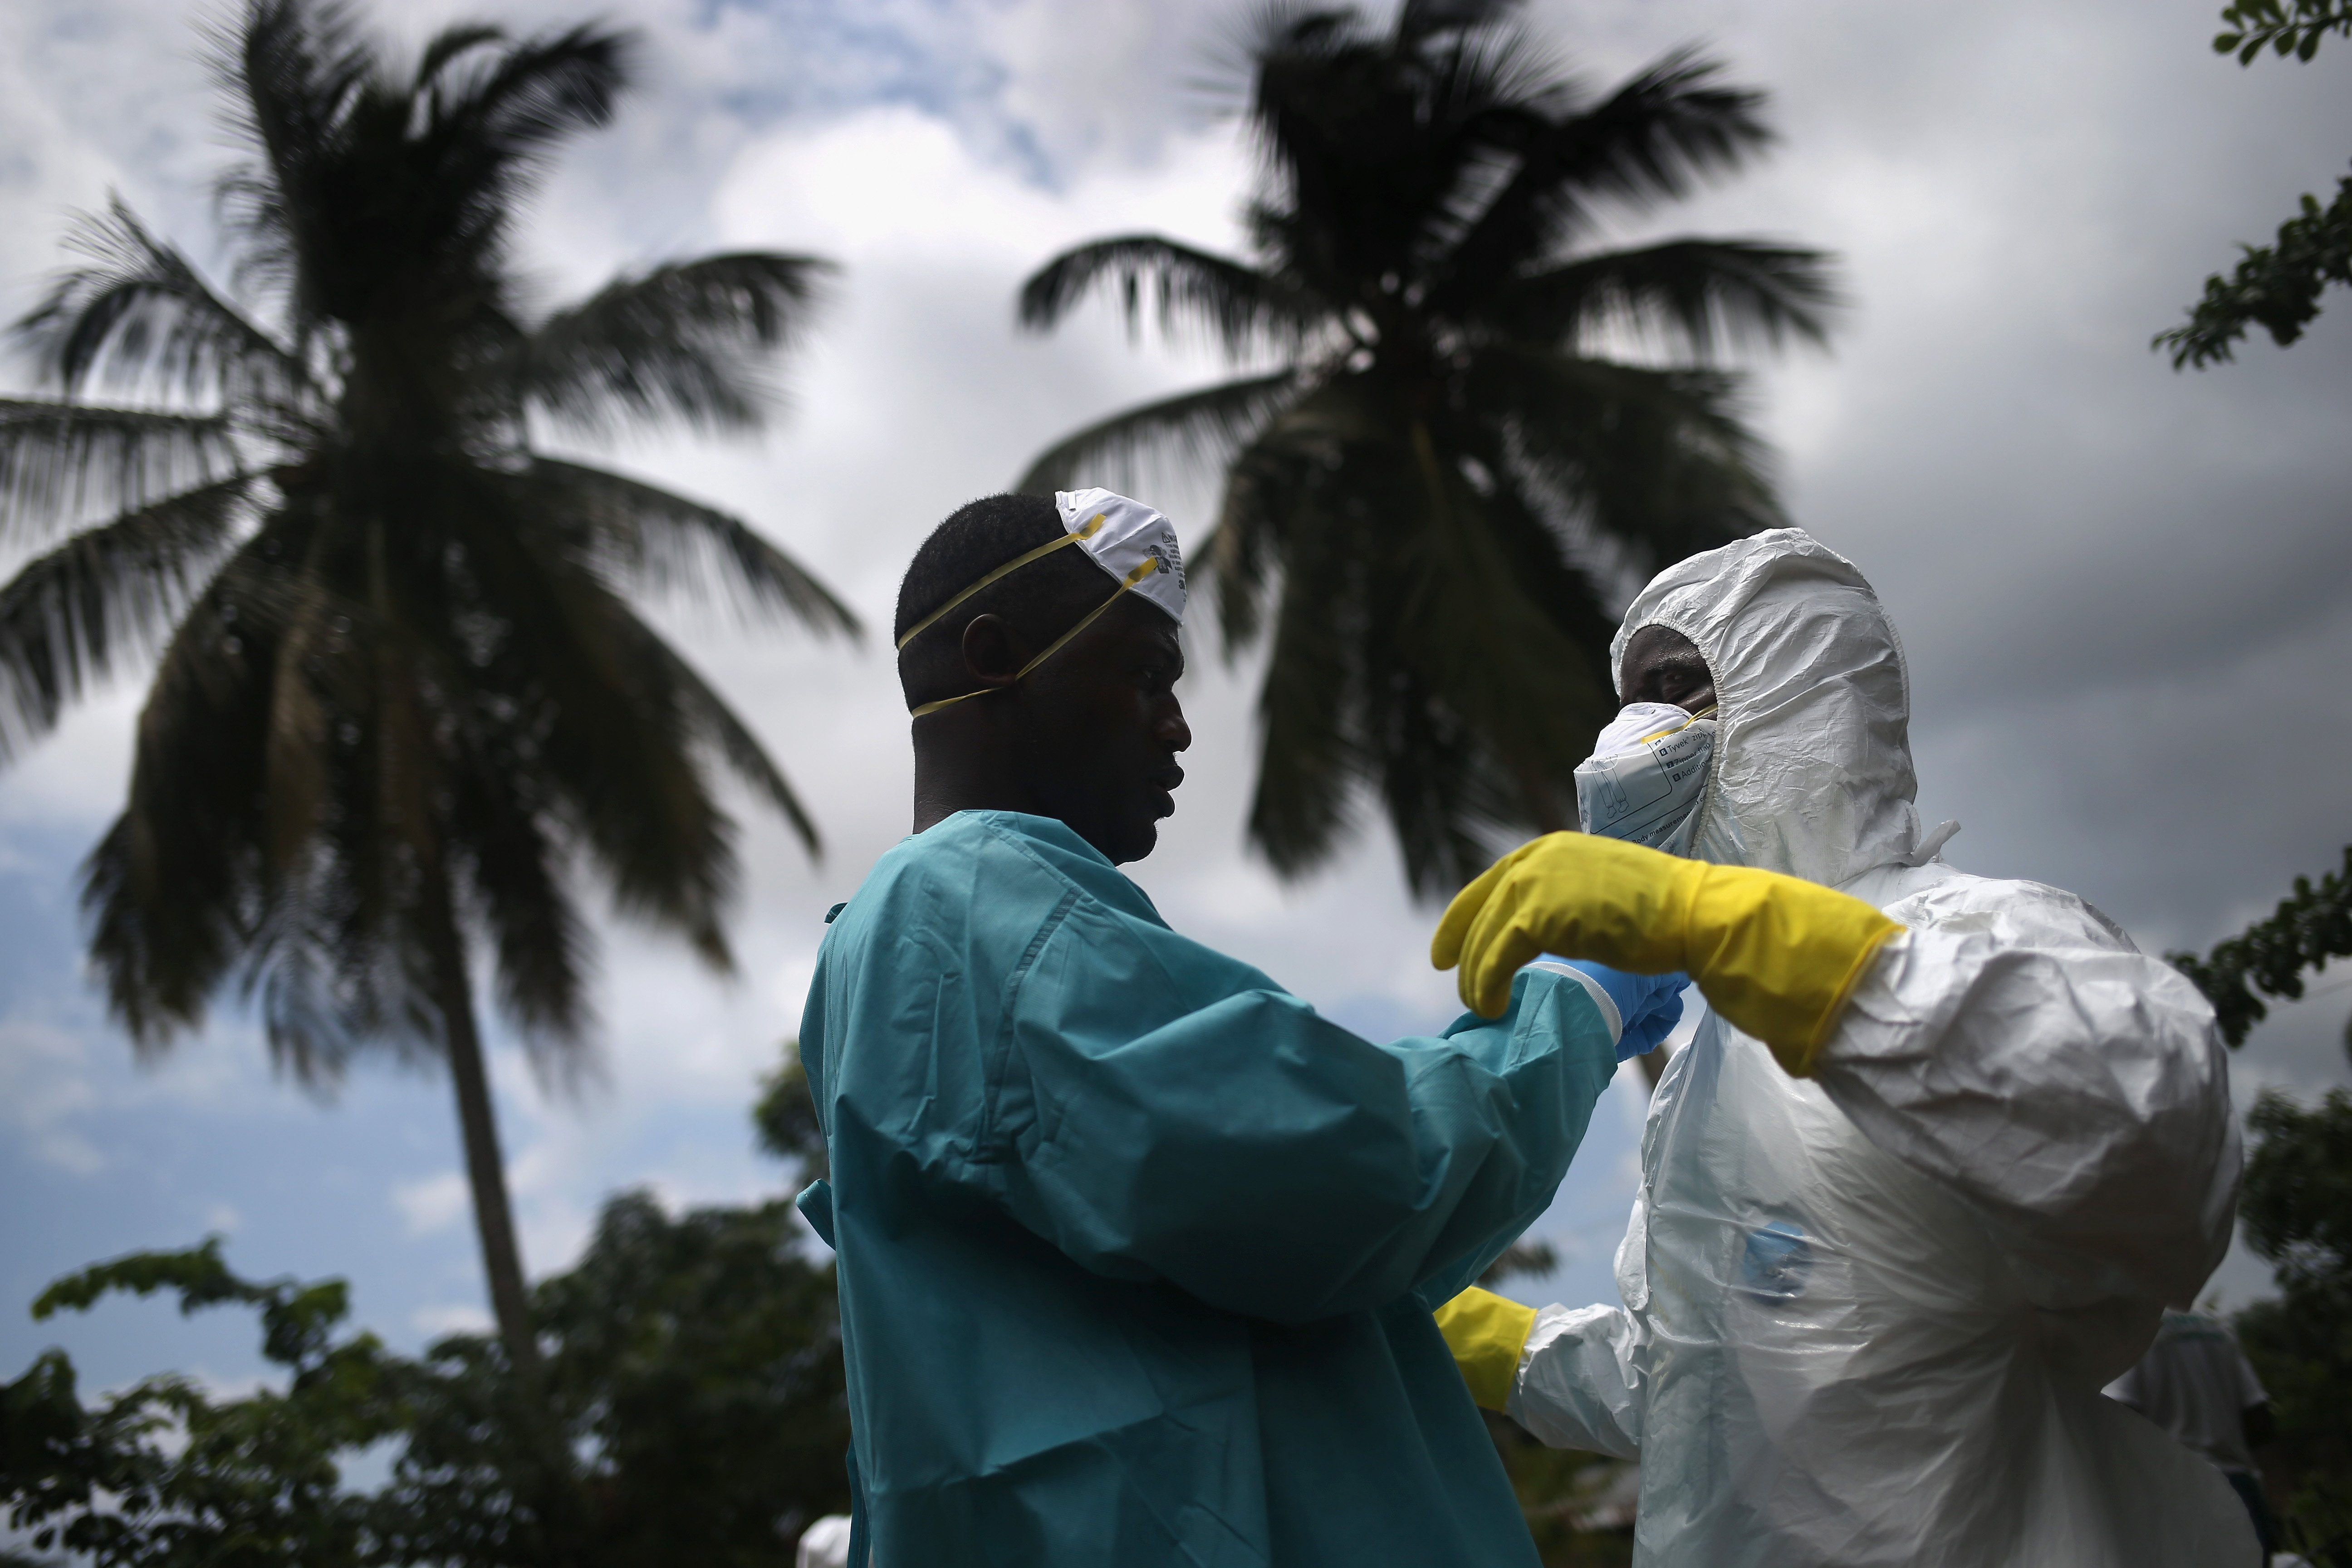 An Ebola burial team dresses in protective clothing before collecting the body of a woman from her home in the New Kru Town suburb of Monrovia, Liberia on Oct. 10, 2014